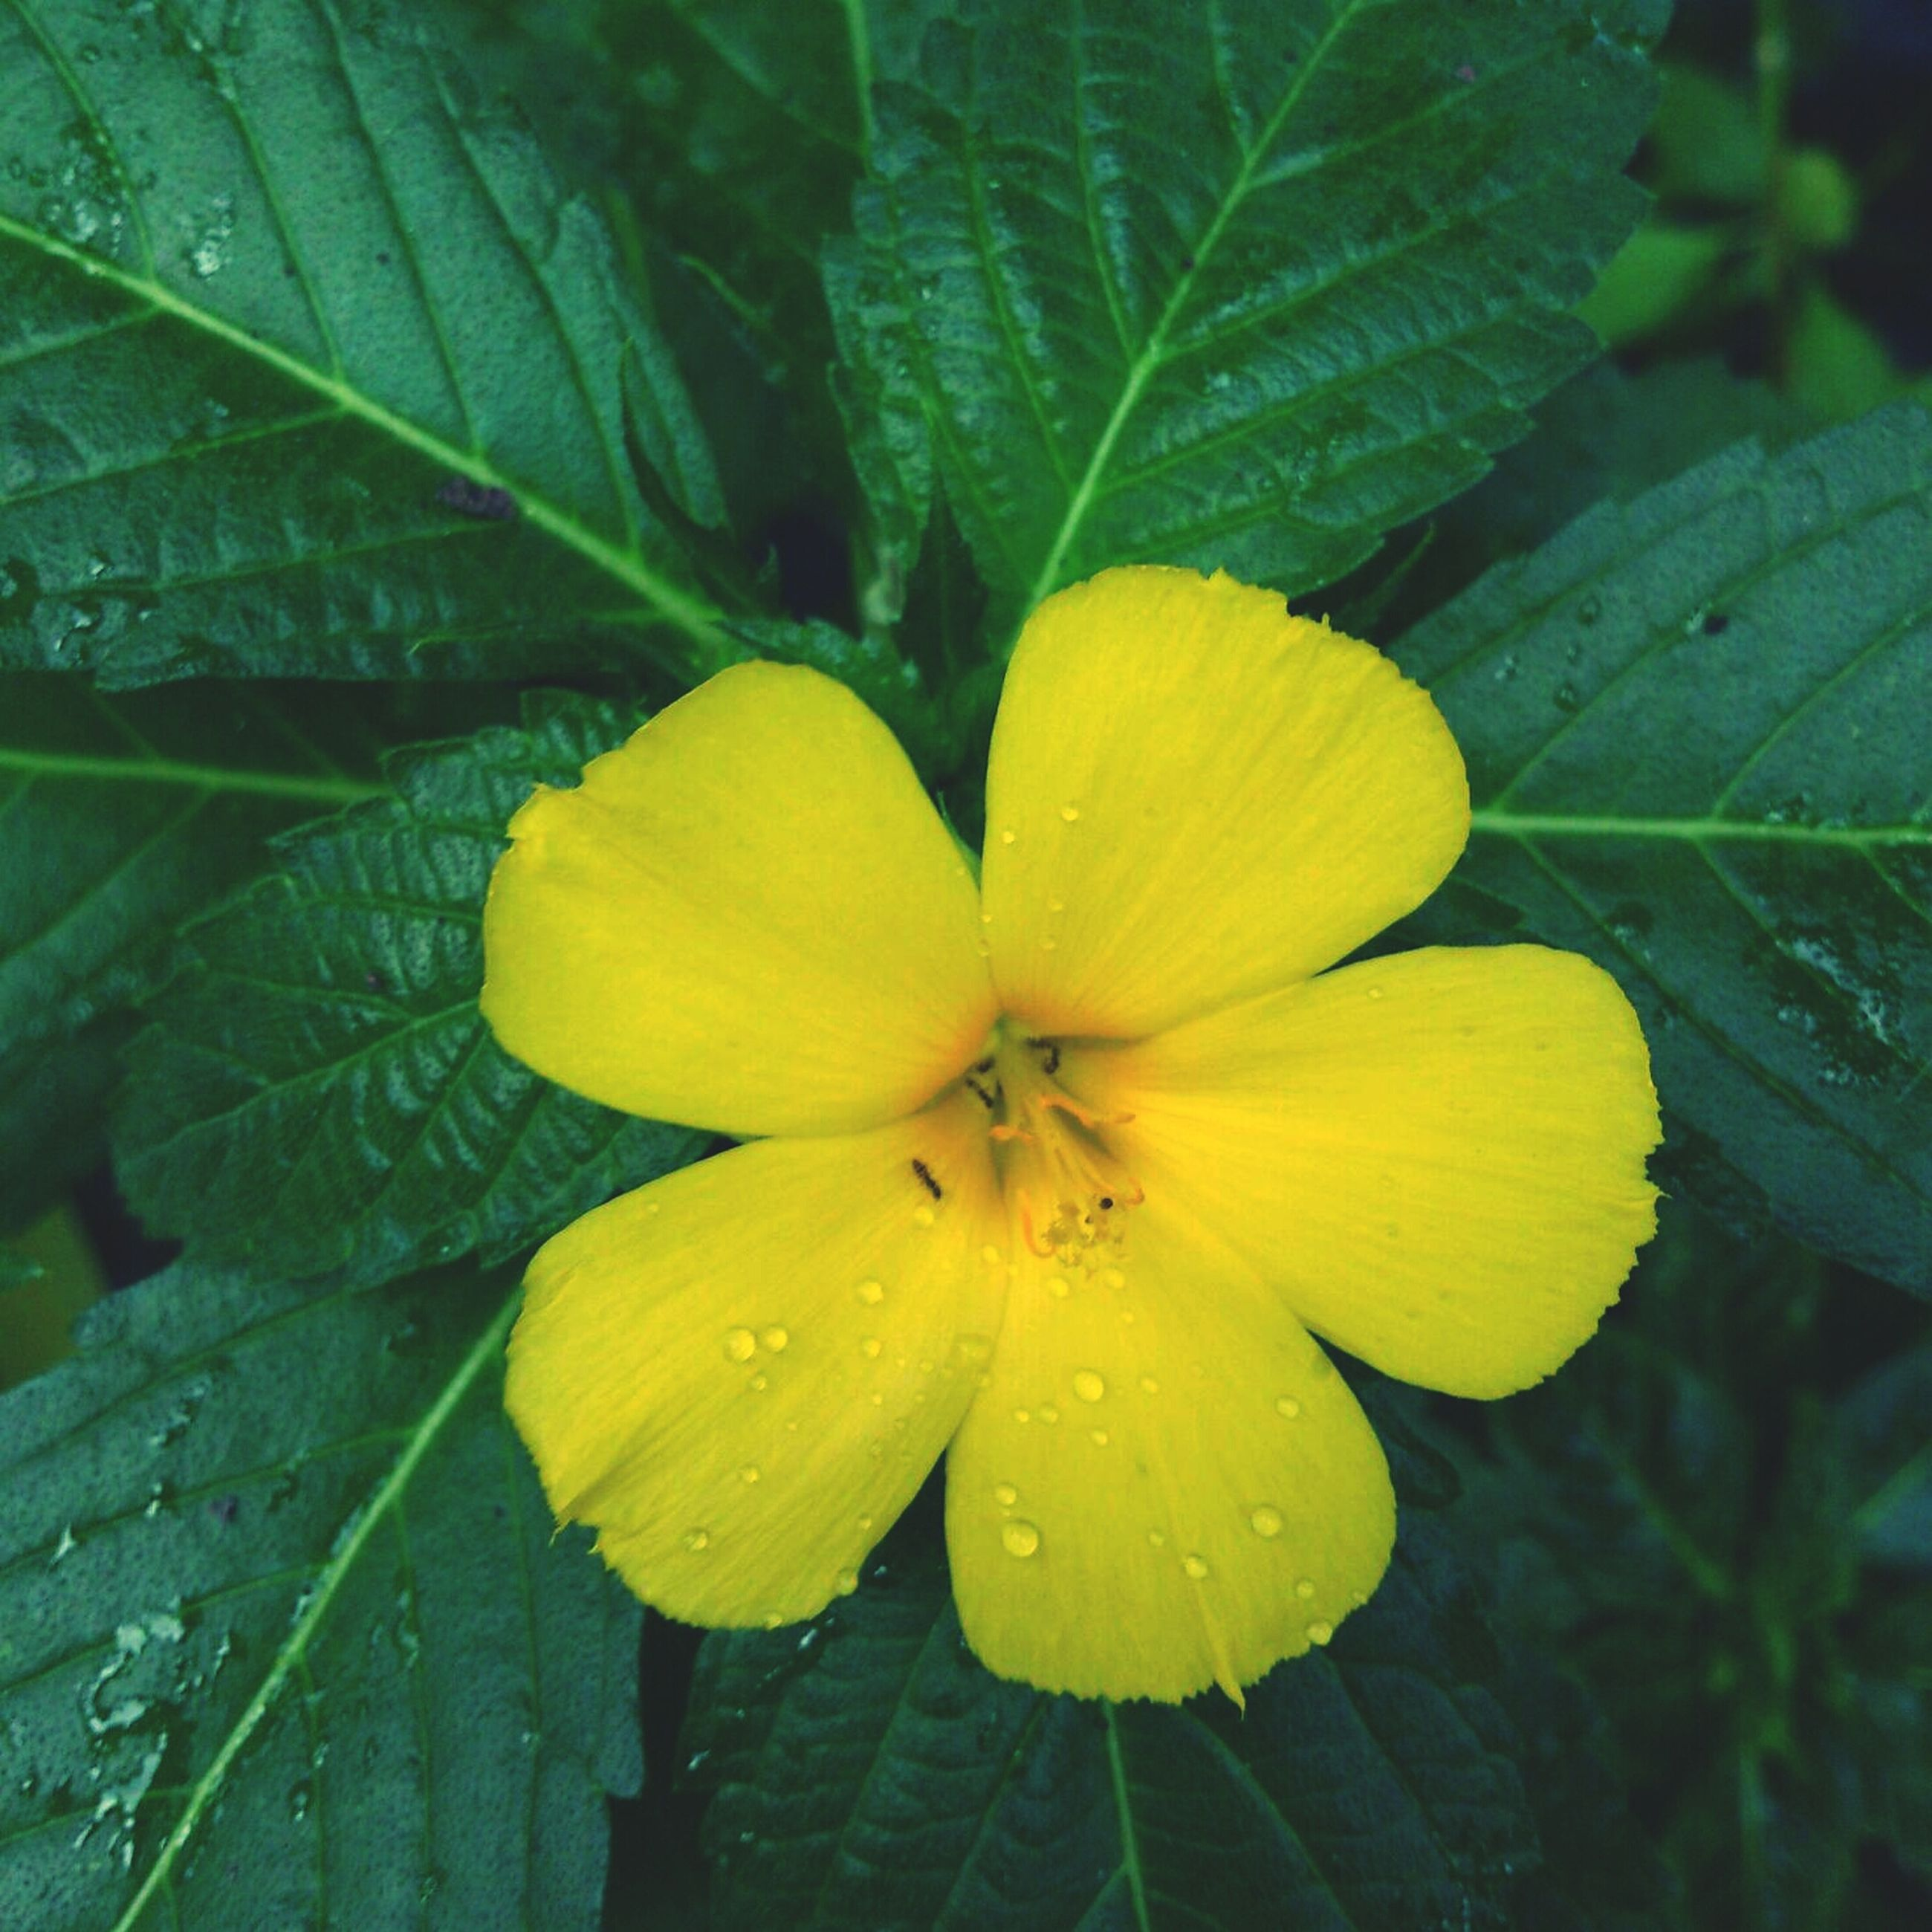 freshness, flower, petal, fragility, drop, water, wet, yellow, flower head, growth, close-up, leaf, beauty in nature, nature, single flower, plant, blooming, focus on foreground, dew, high angle view